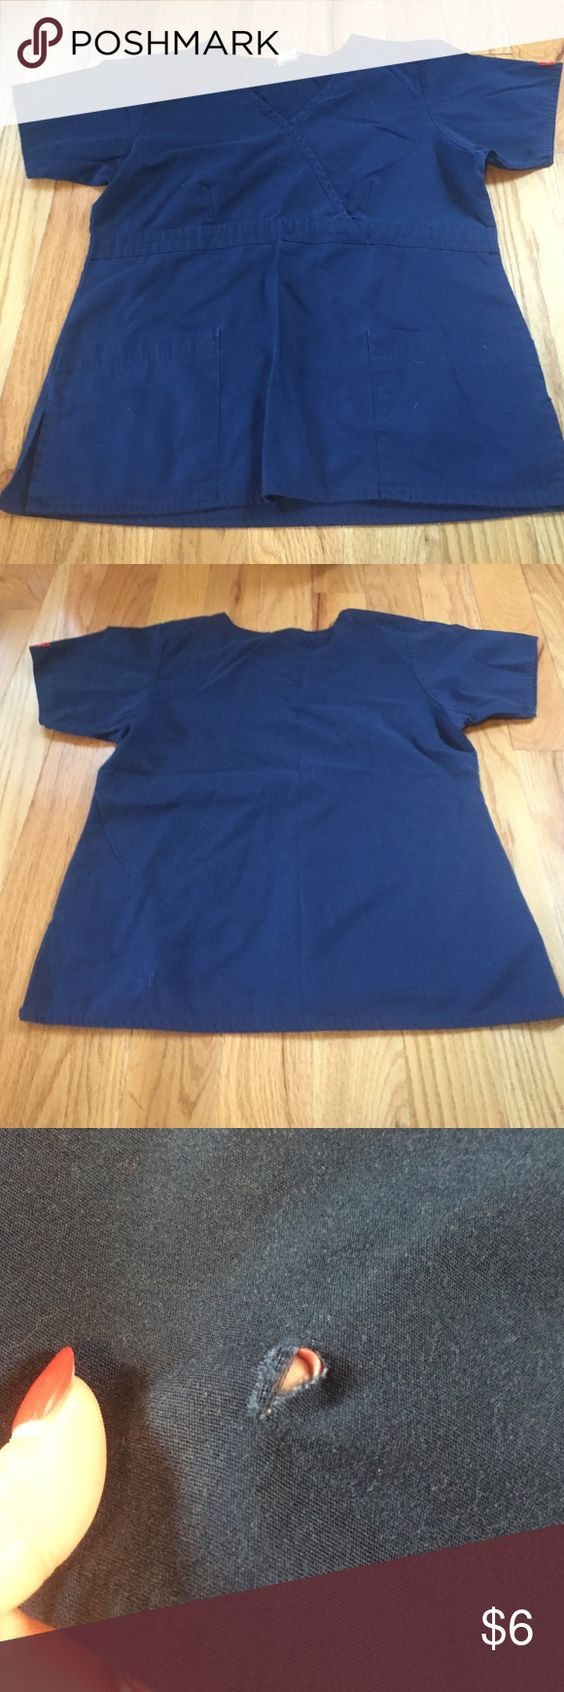 Navy scrub top Two front pockets; small hole on bottom of back (pic #3) but not very noticeable- other than that in great condition Dickies Tops